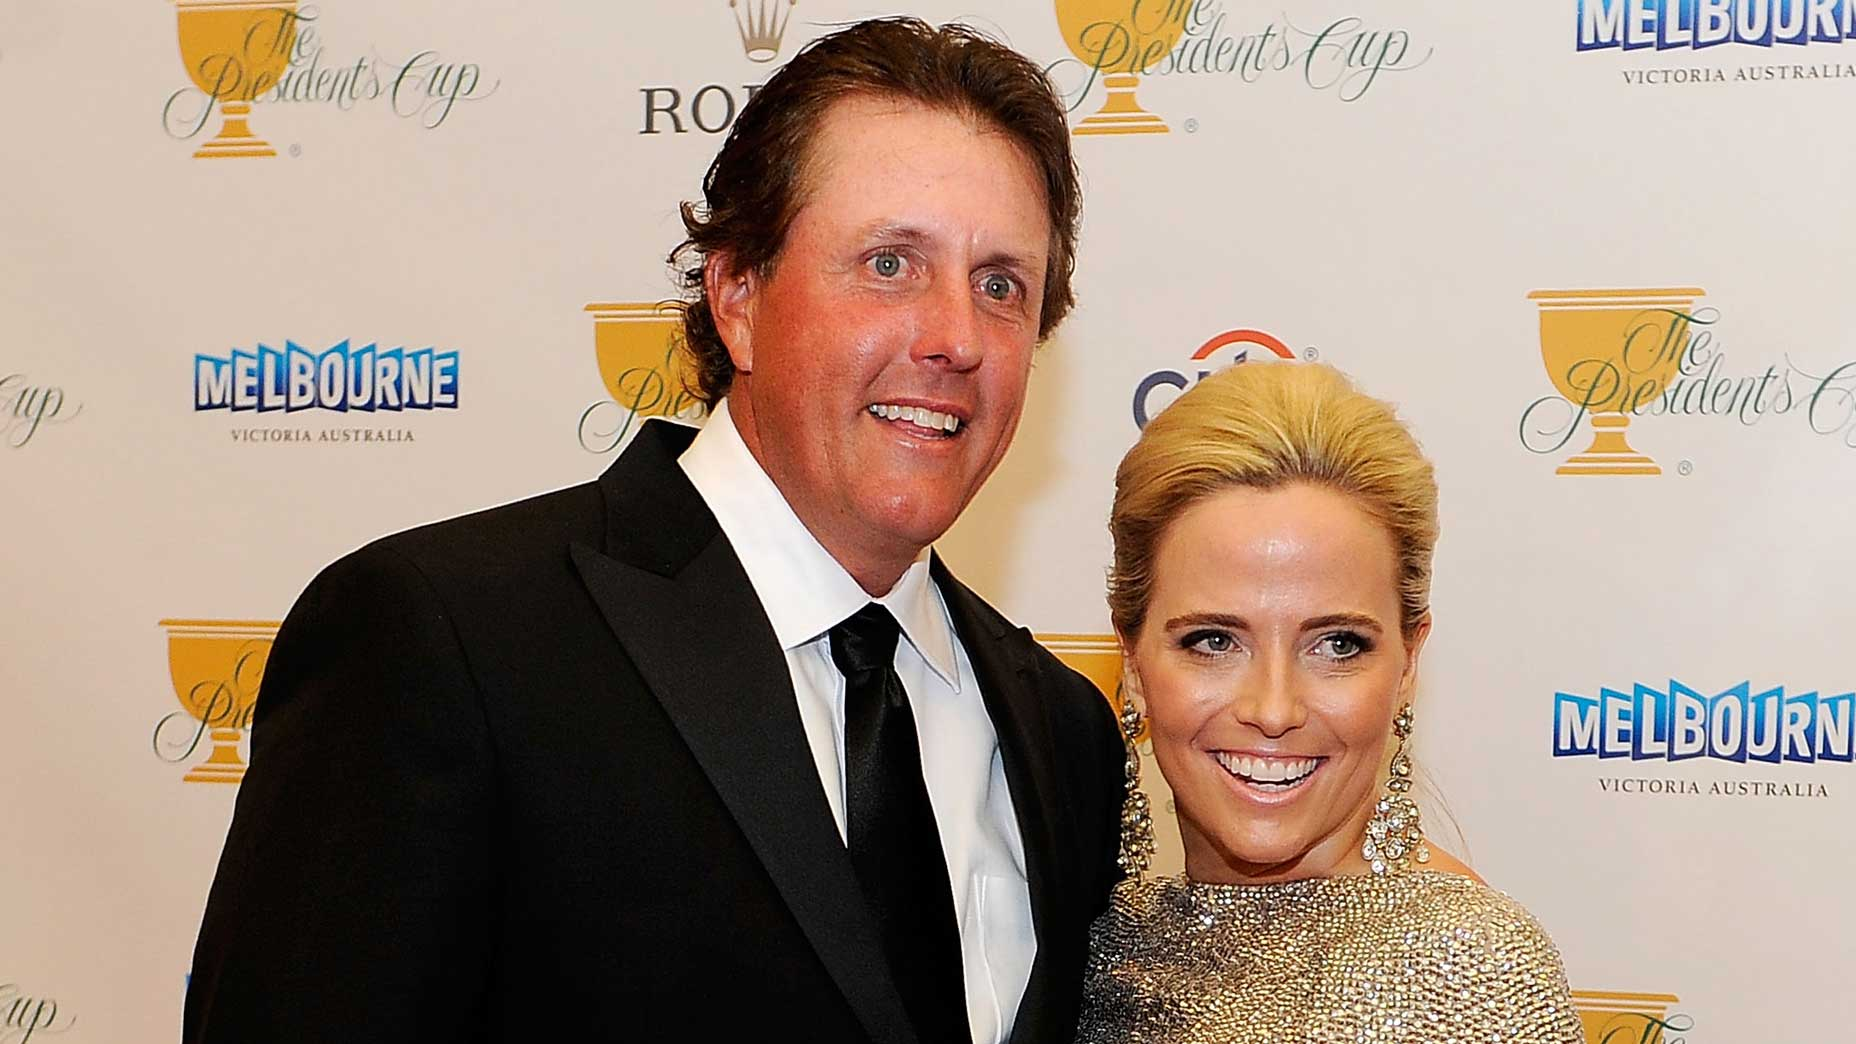 Amy and Phil Mickelson at the 2011 Presidents Cup.